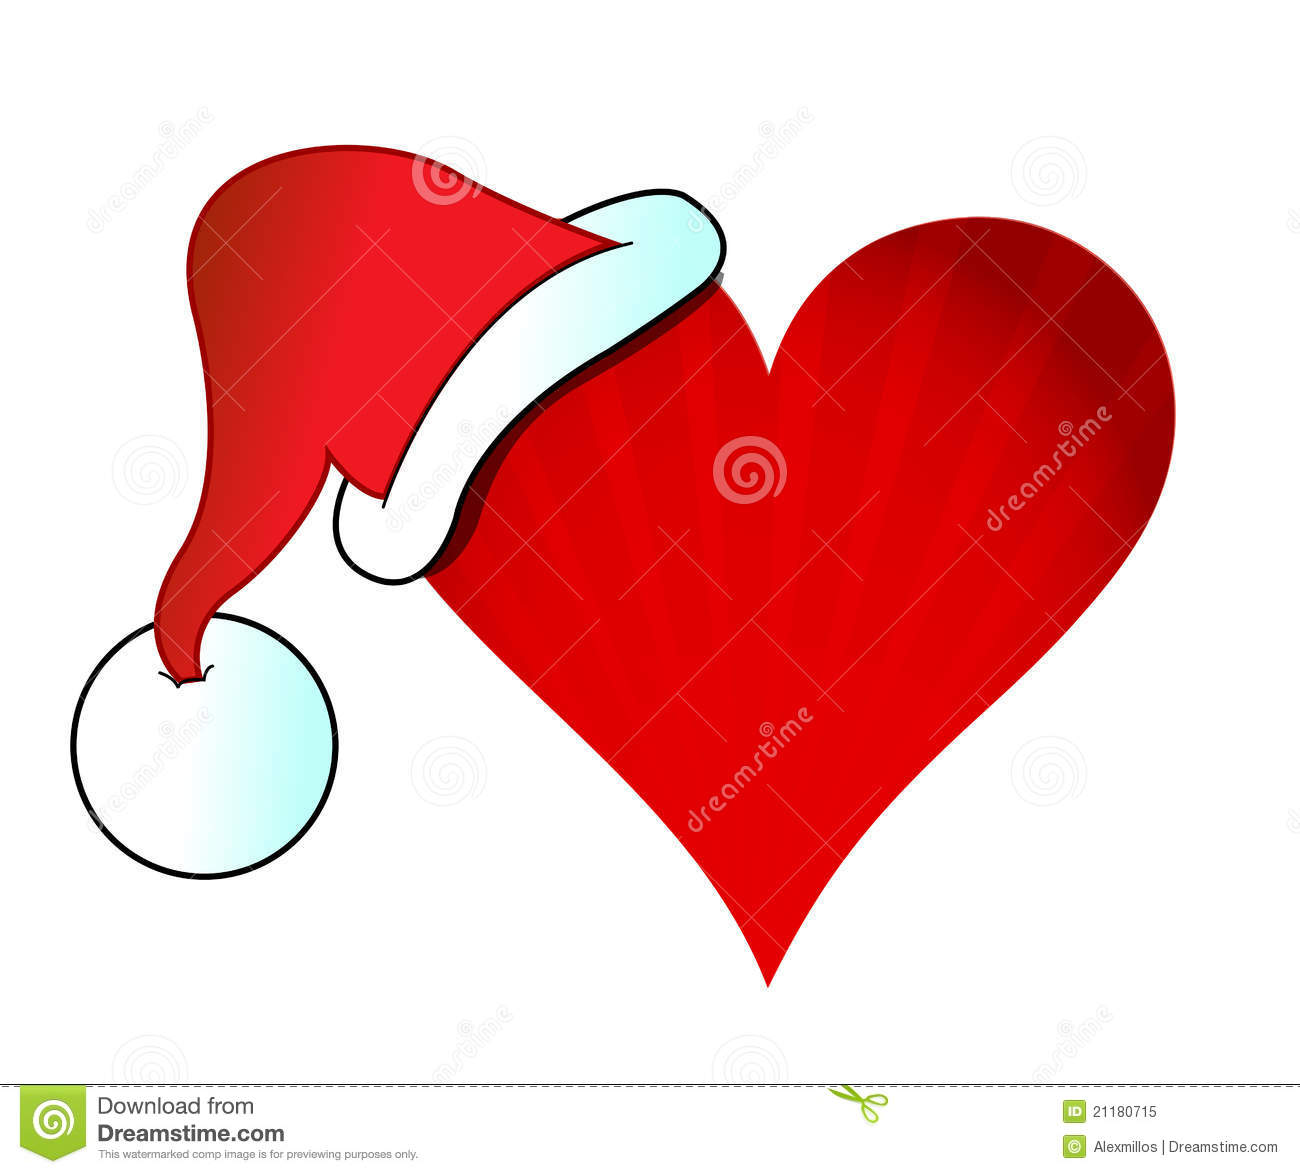 Santa hat heart illustration design